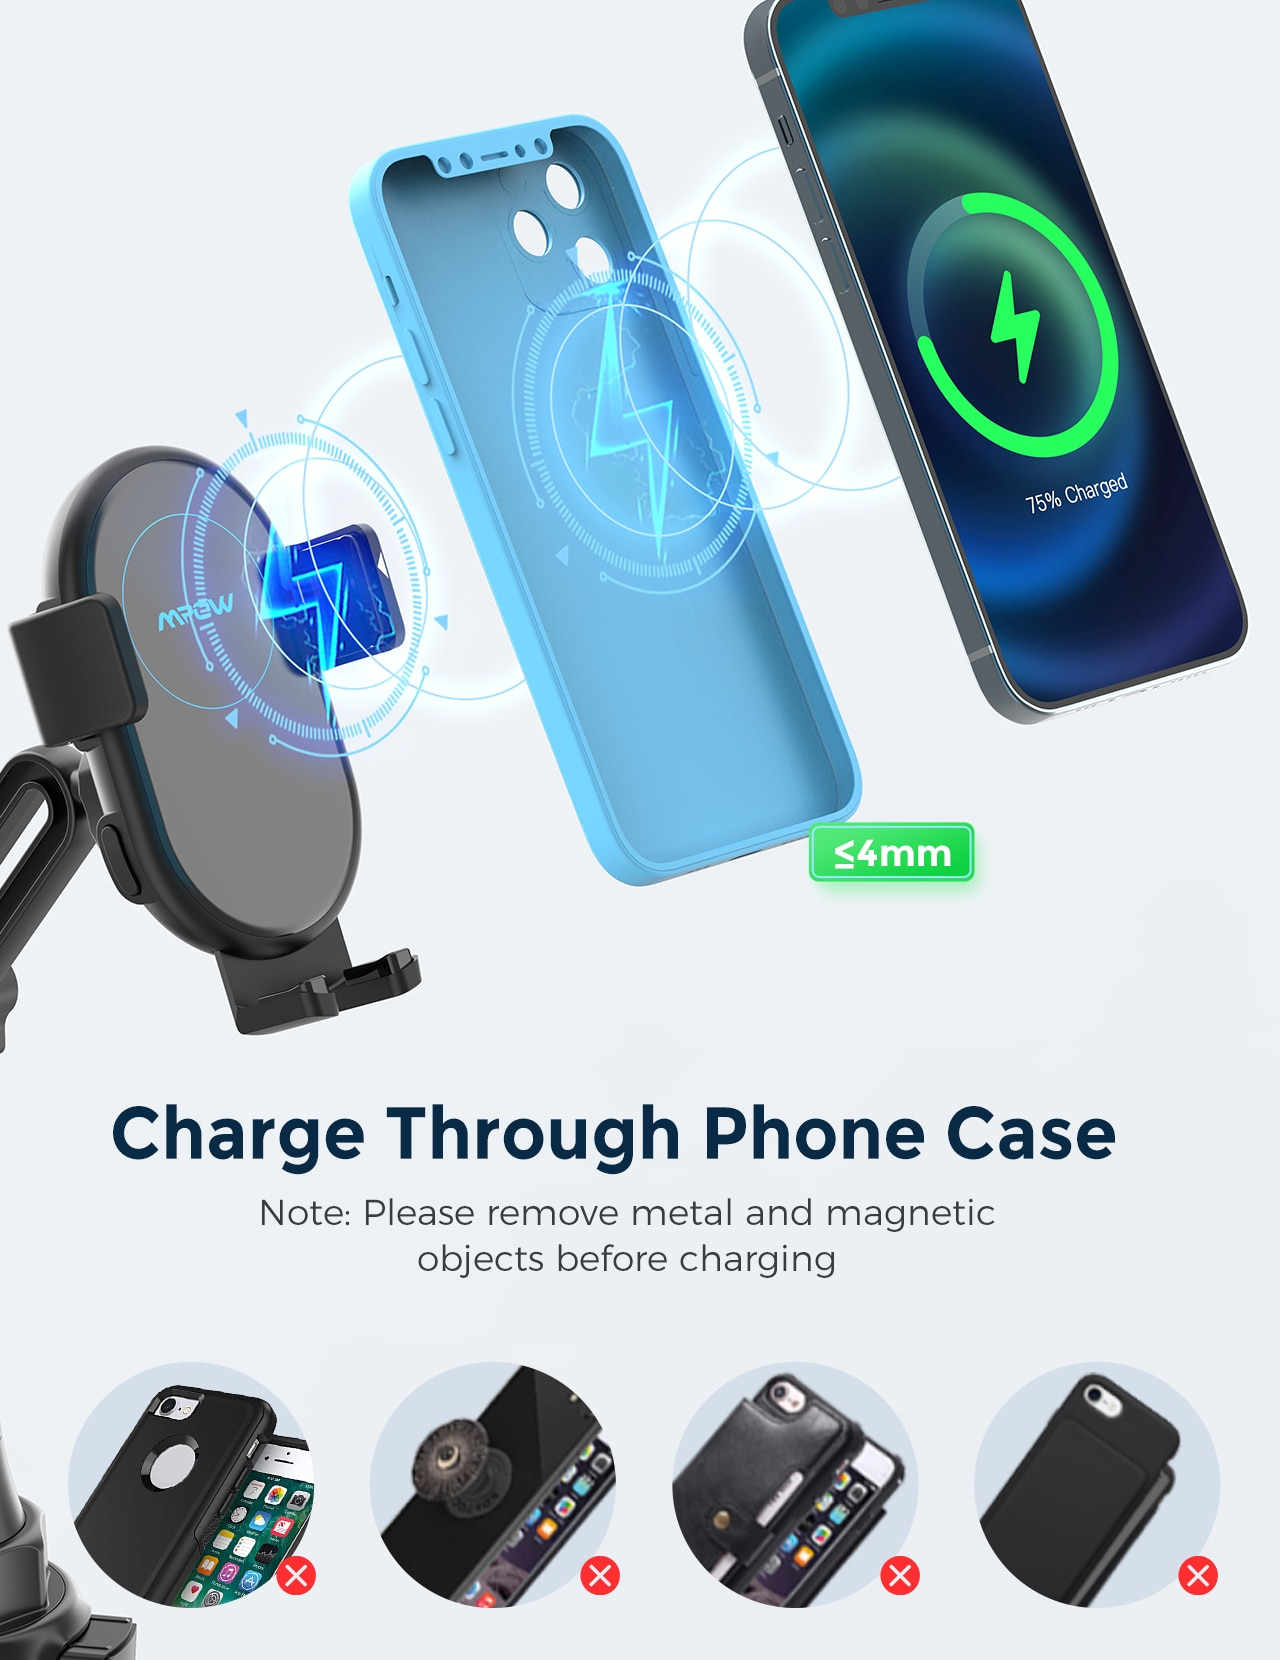 H3c6f991eca394c5f8ece69abefb146647 - MPOW CA160 Wireless Car Charger 15W Auto-clamping Qi Fast Charging Car Mount with Built-in Battery Cup Holder Vent Phone Holder